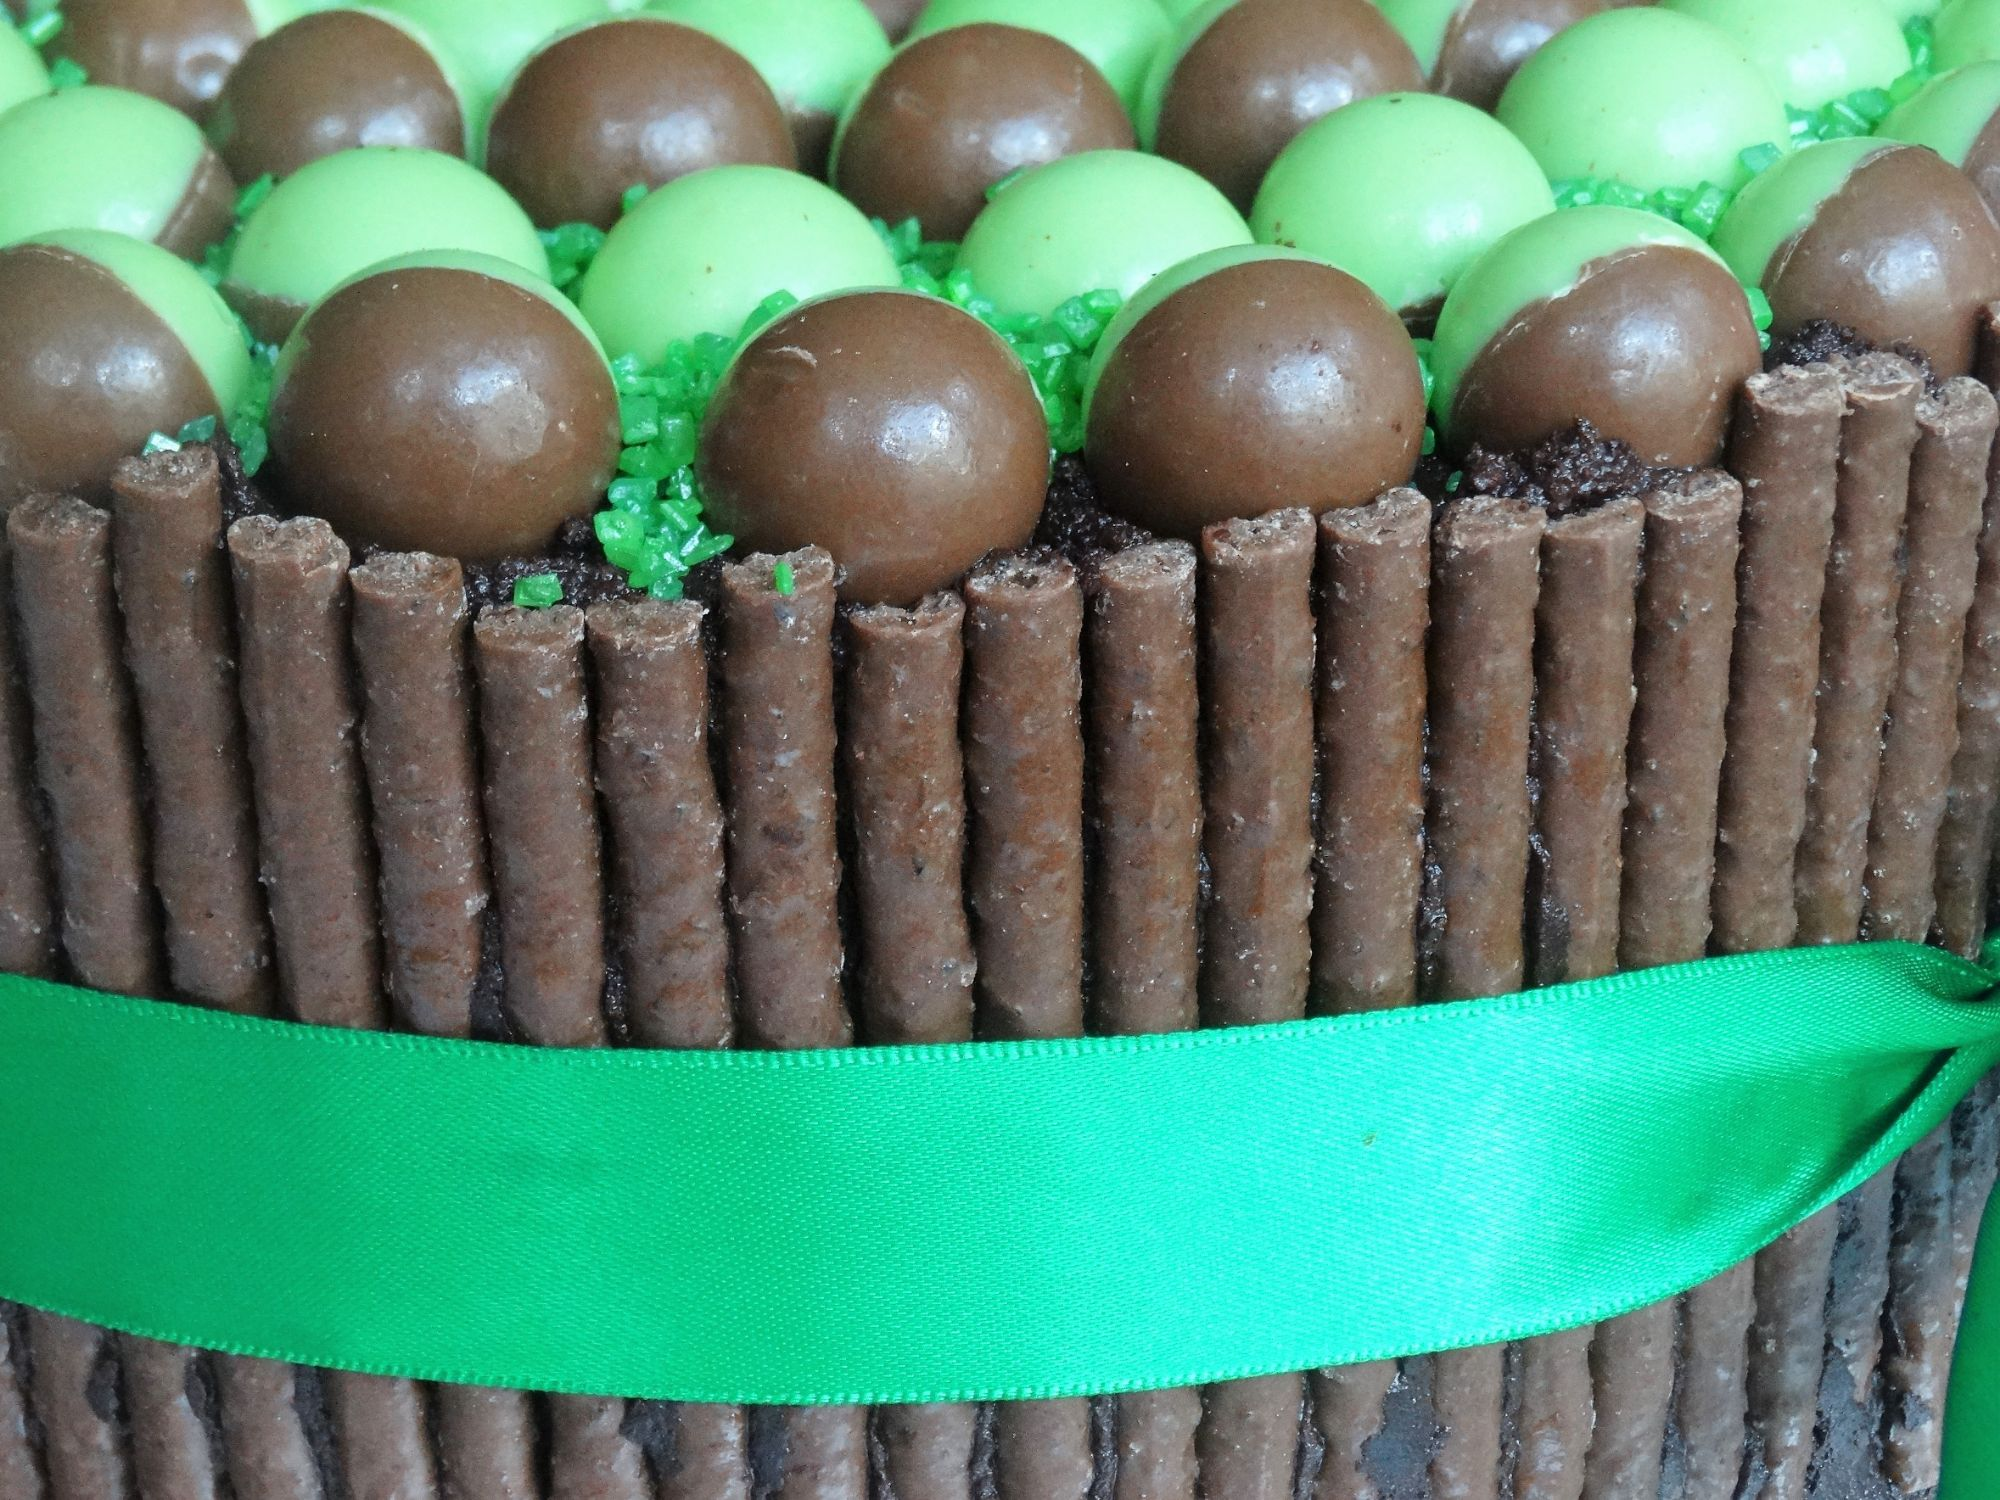 Mint Aero and Mint Matchmakers Layer Cake